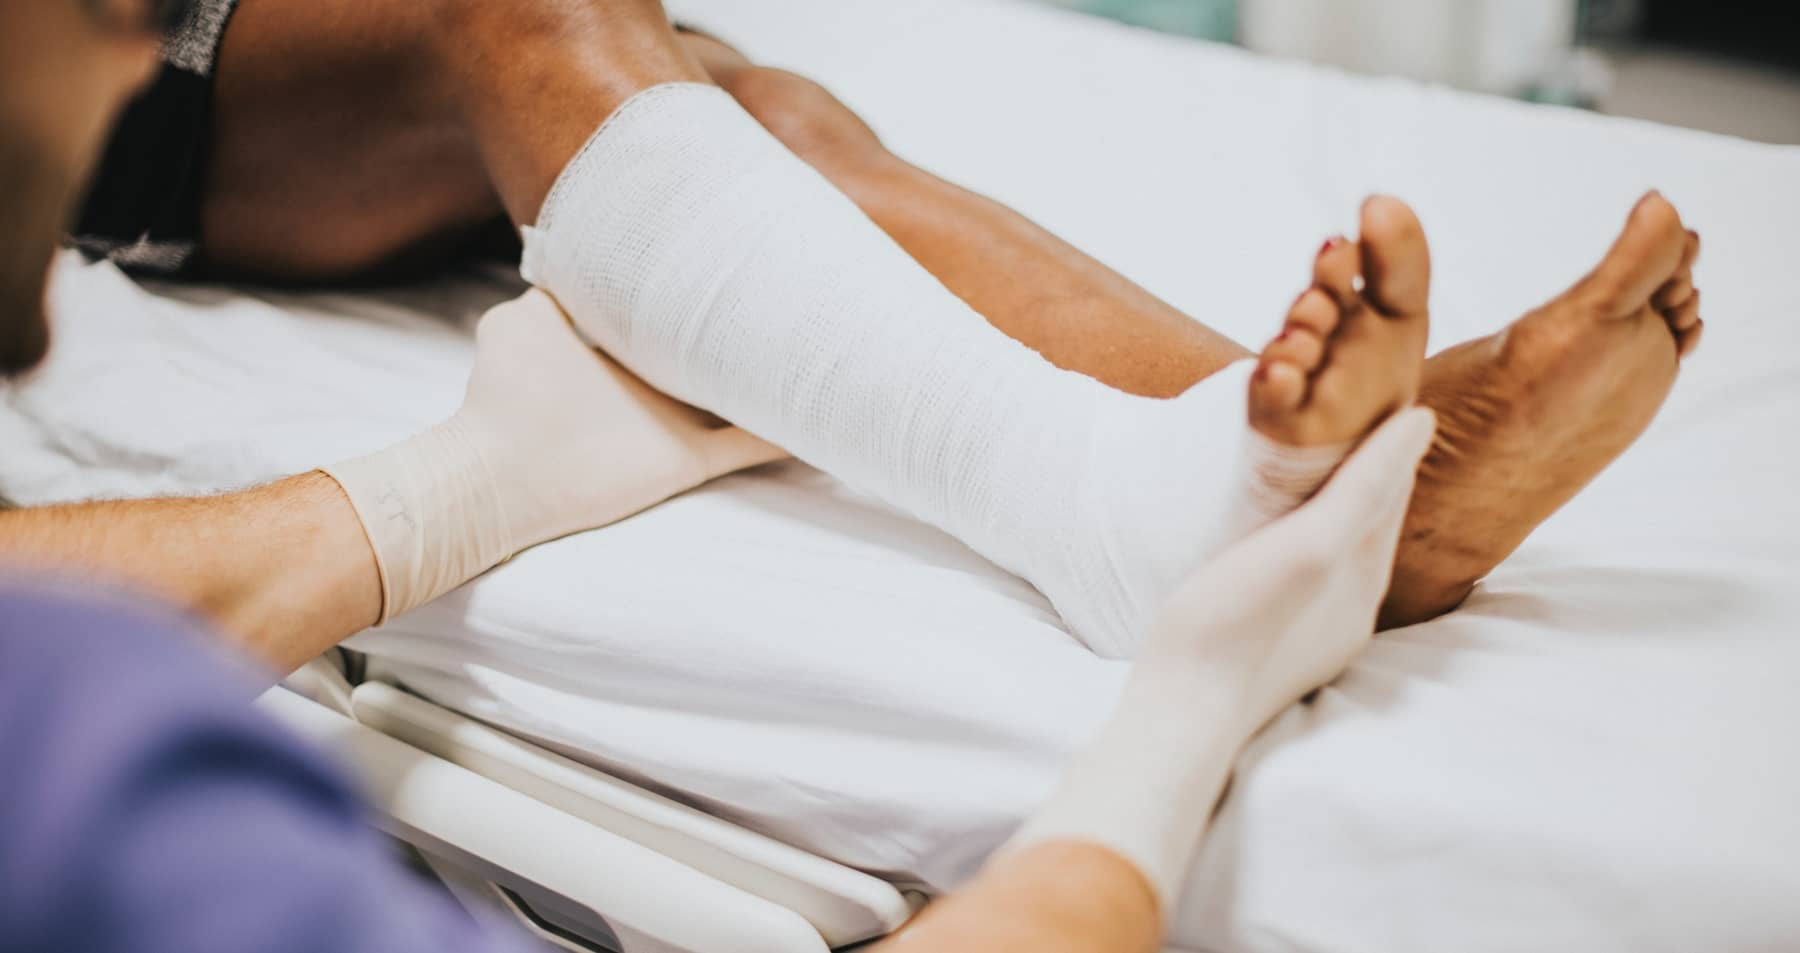 The Difference between a Worker's Compensation Claim and a Personal Injury Claim